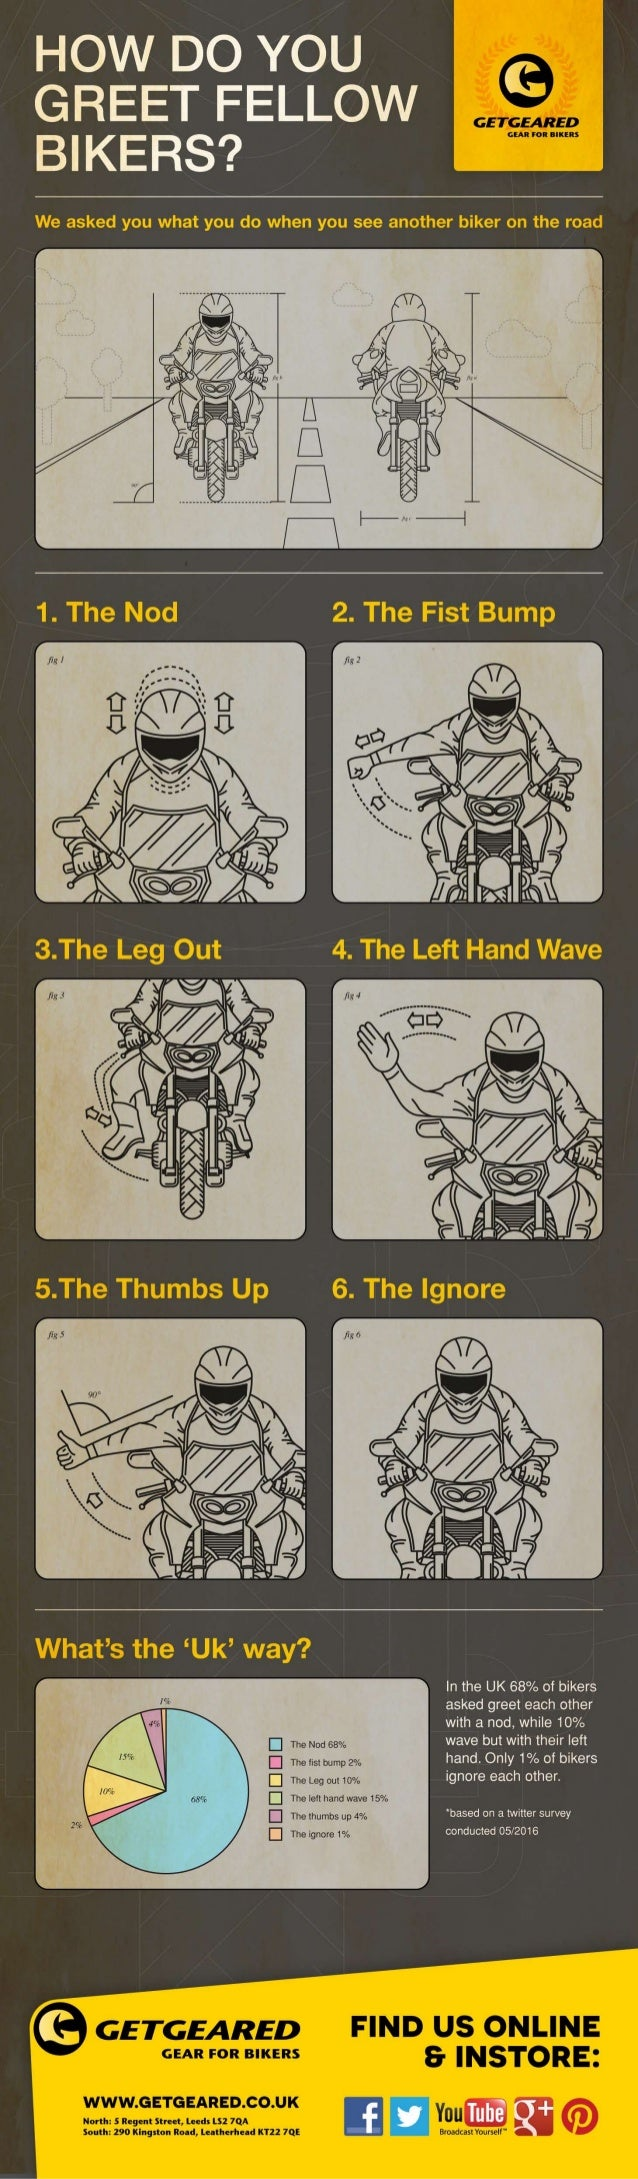 How Do You Greet Fellow Bikers Infographic